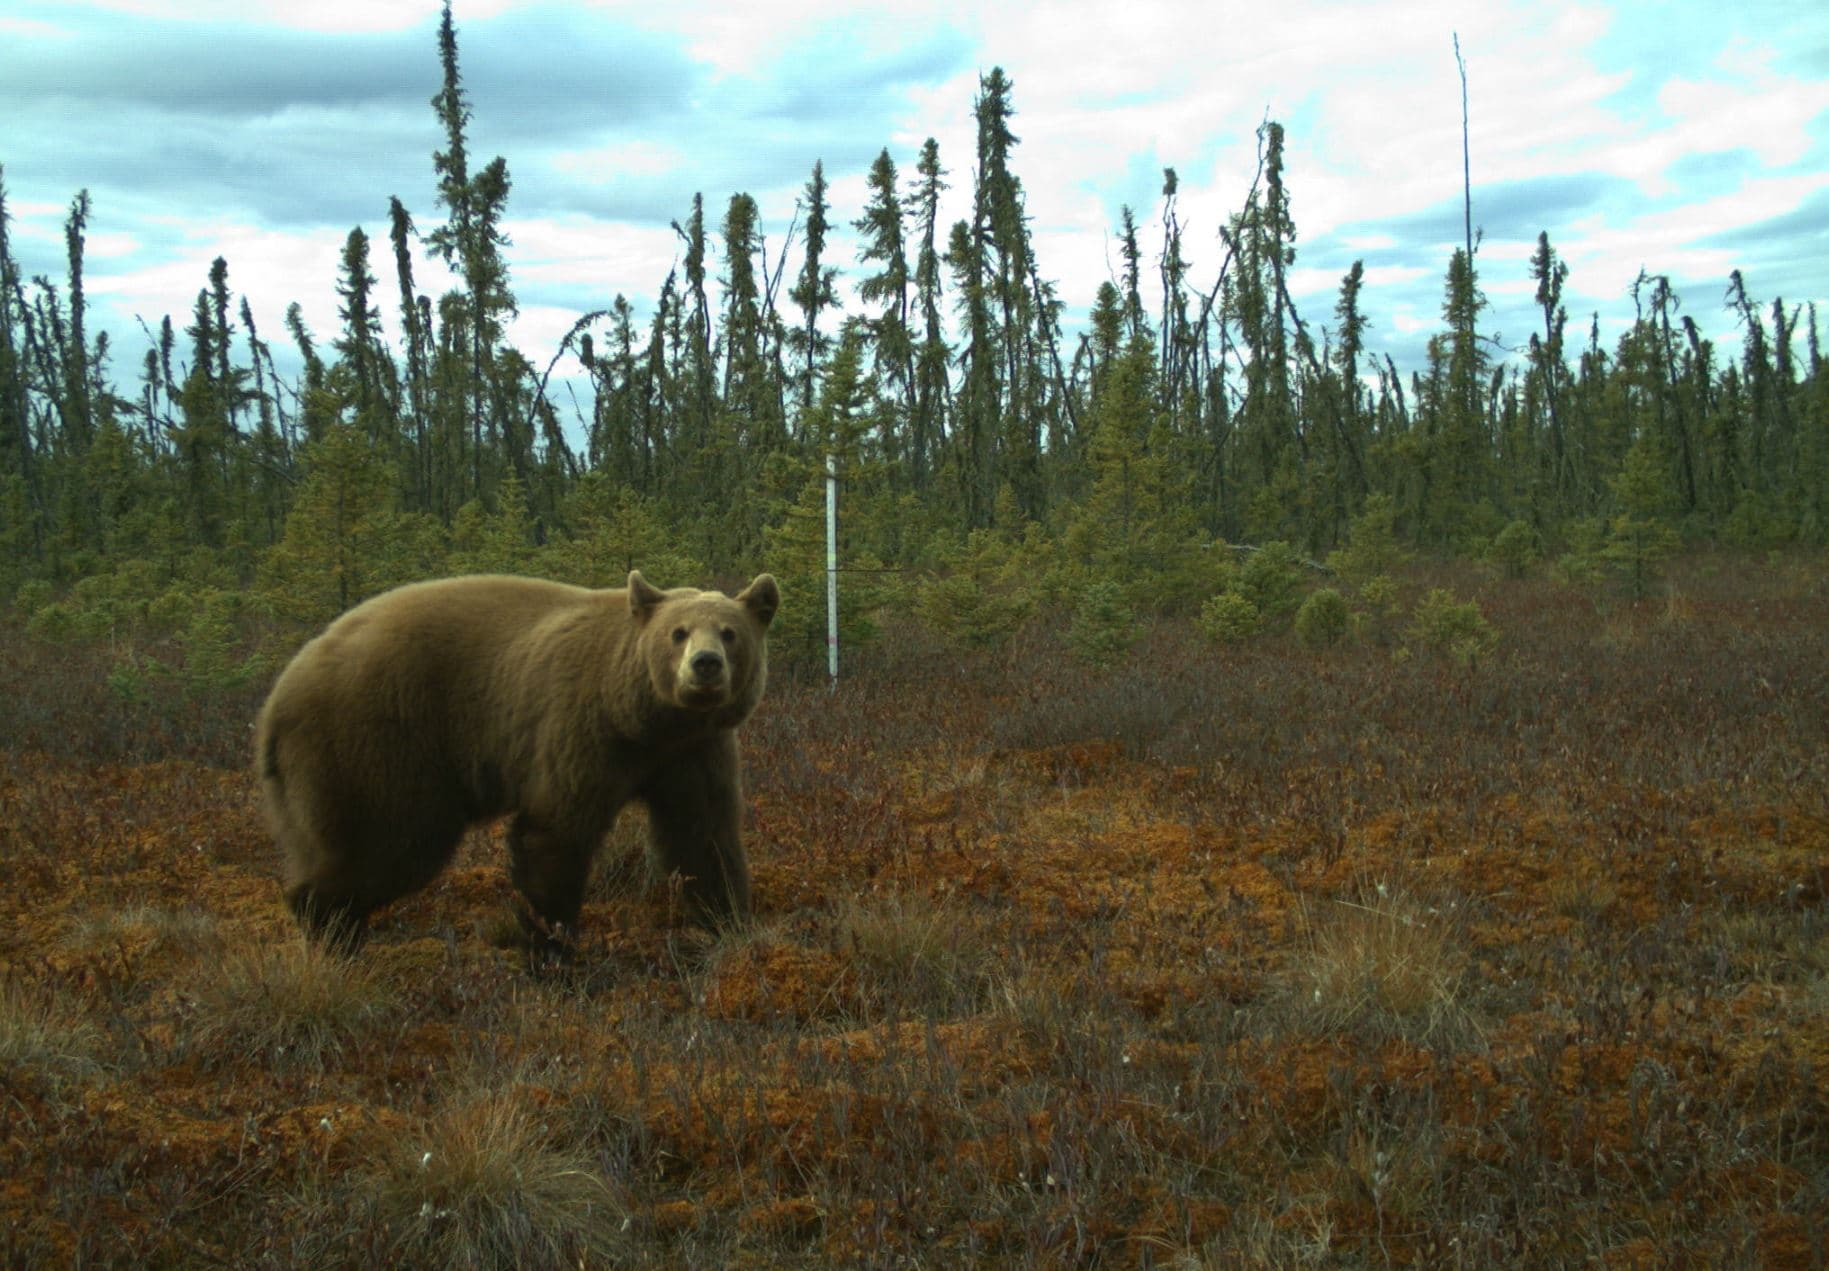 A grizzly bear captured by wildlife monitoring cameras.